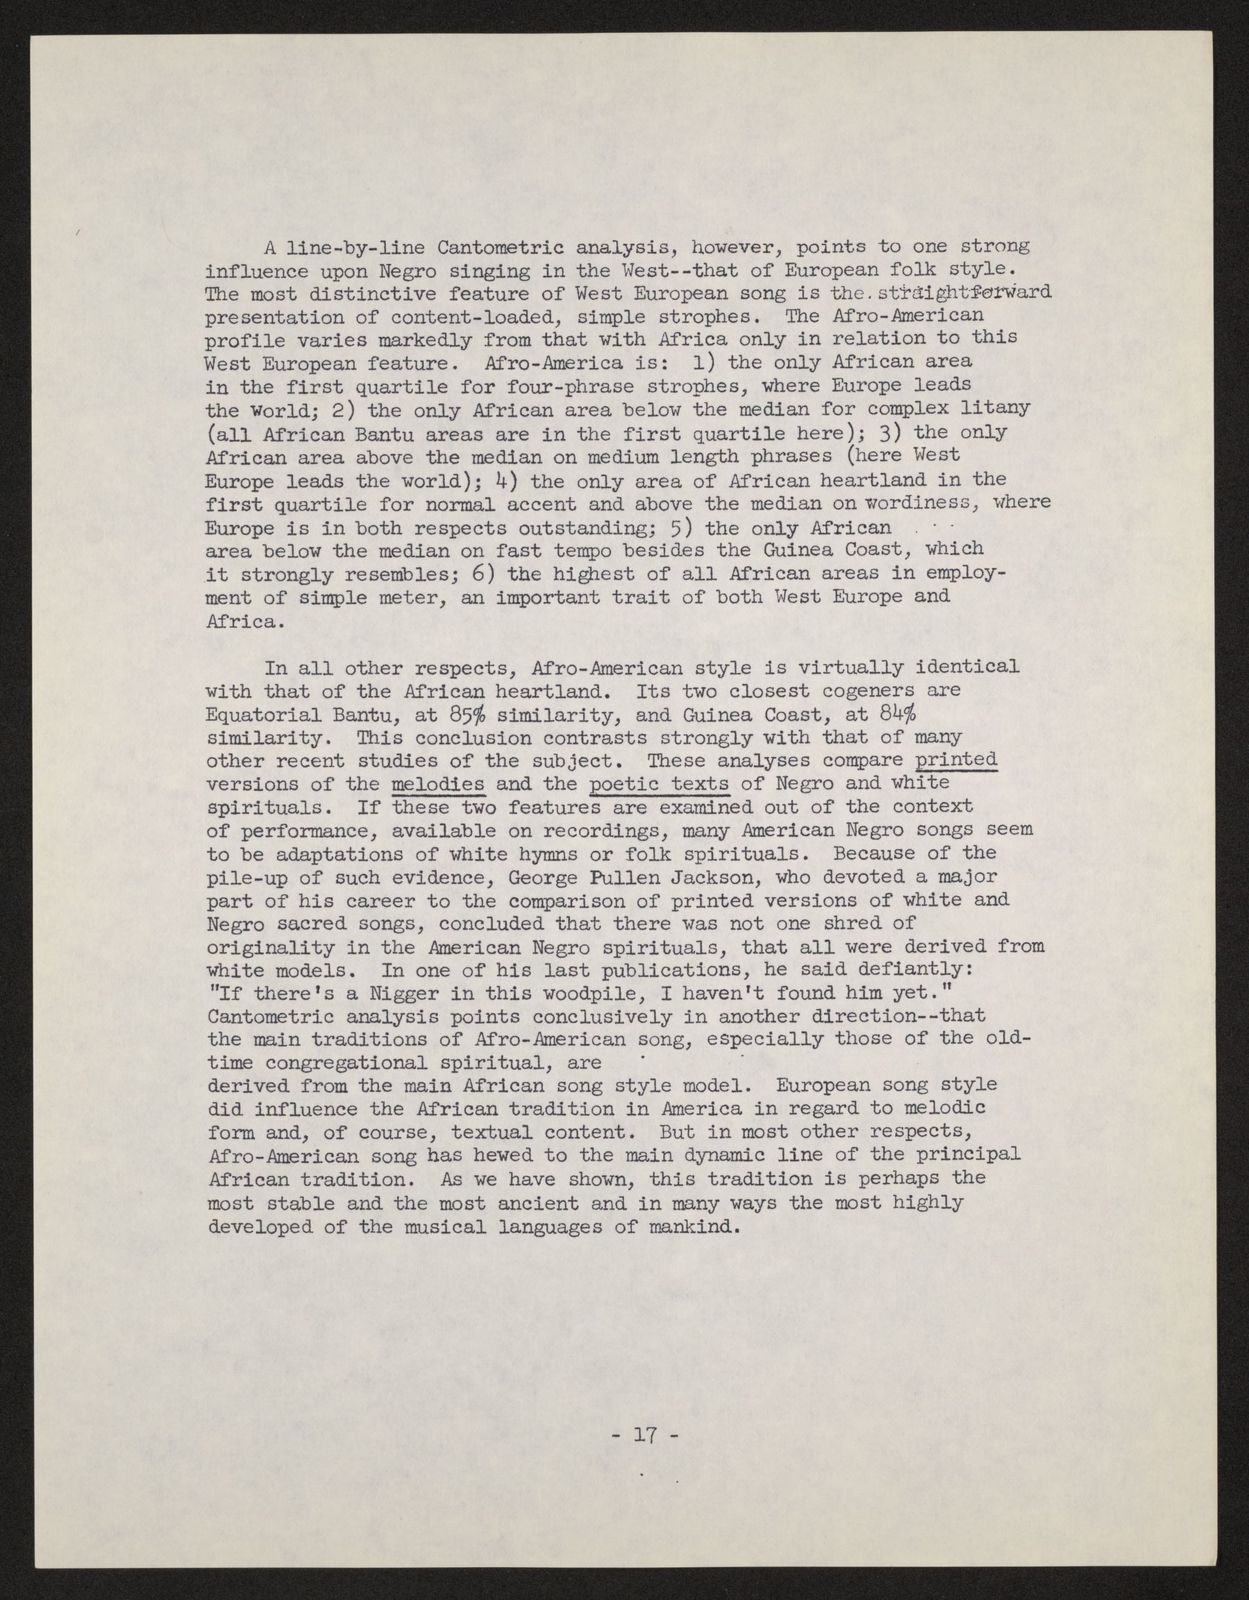 Alan Lomax Collection, Manuscripts, The Homogeneity of African-New World Negro Musical Style, 1967